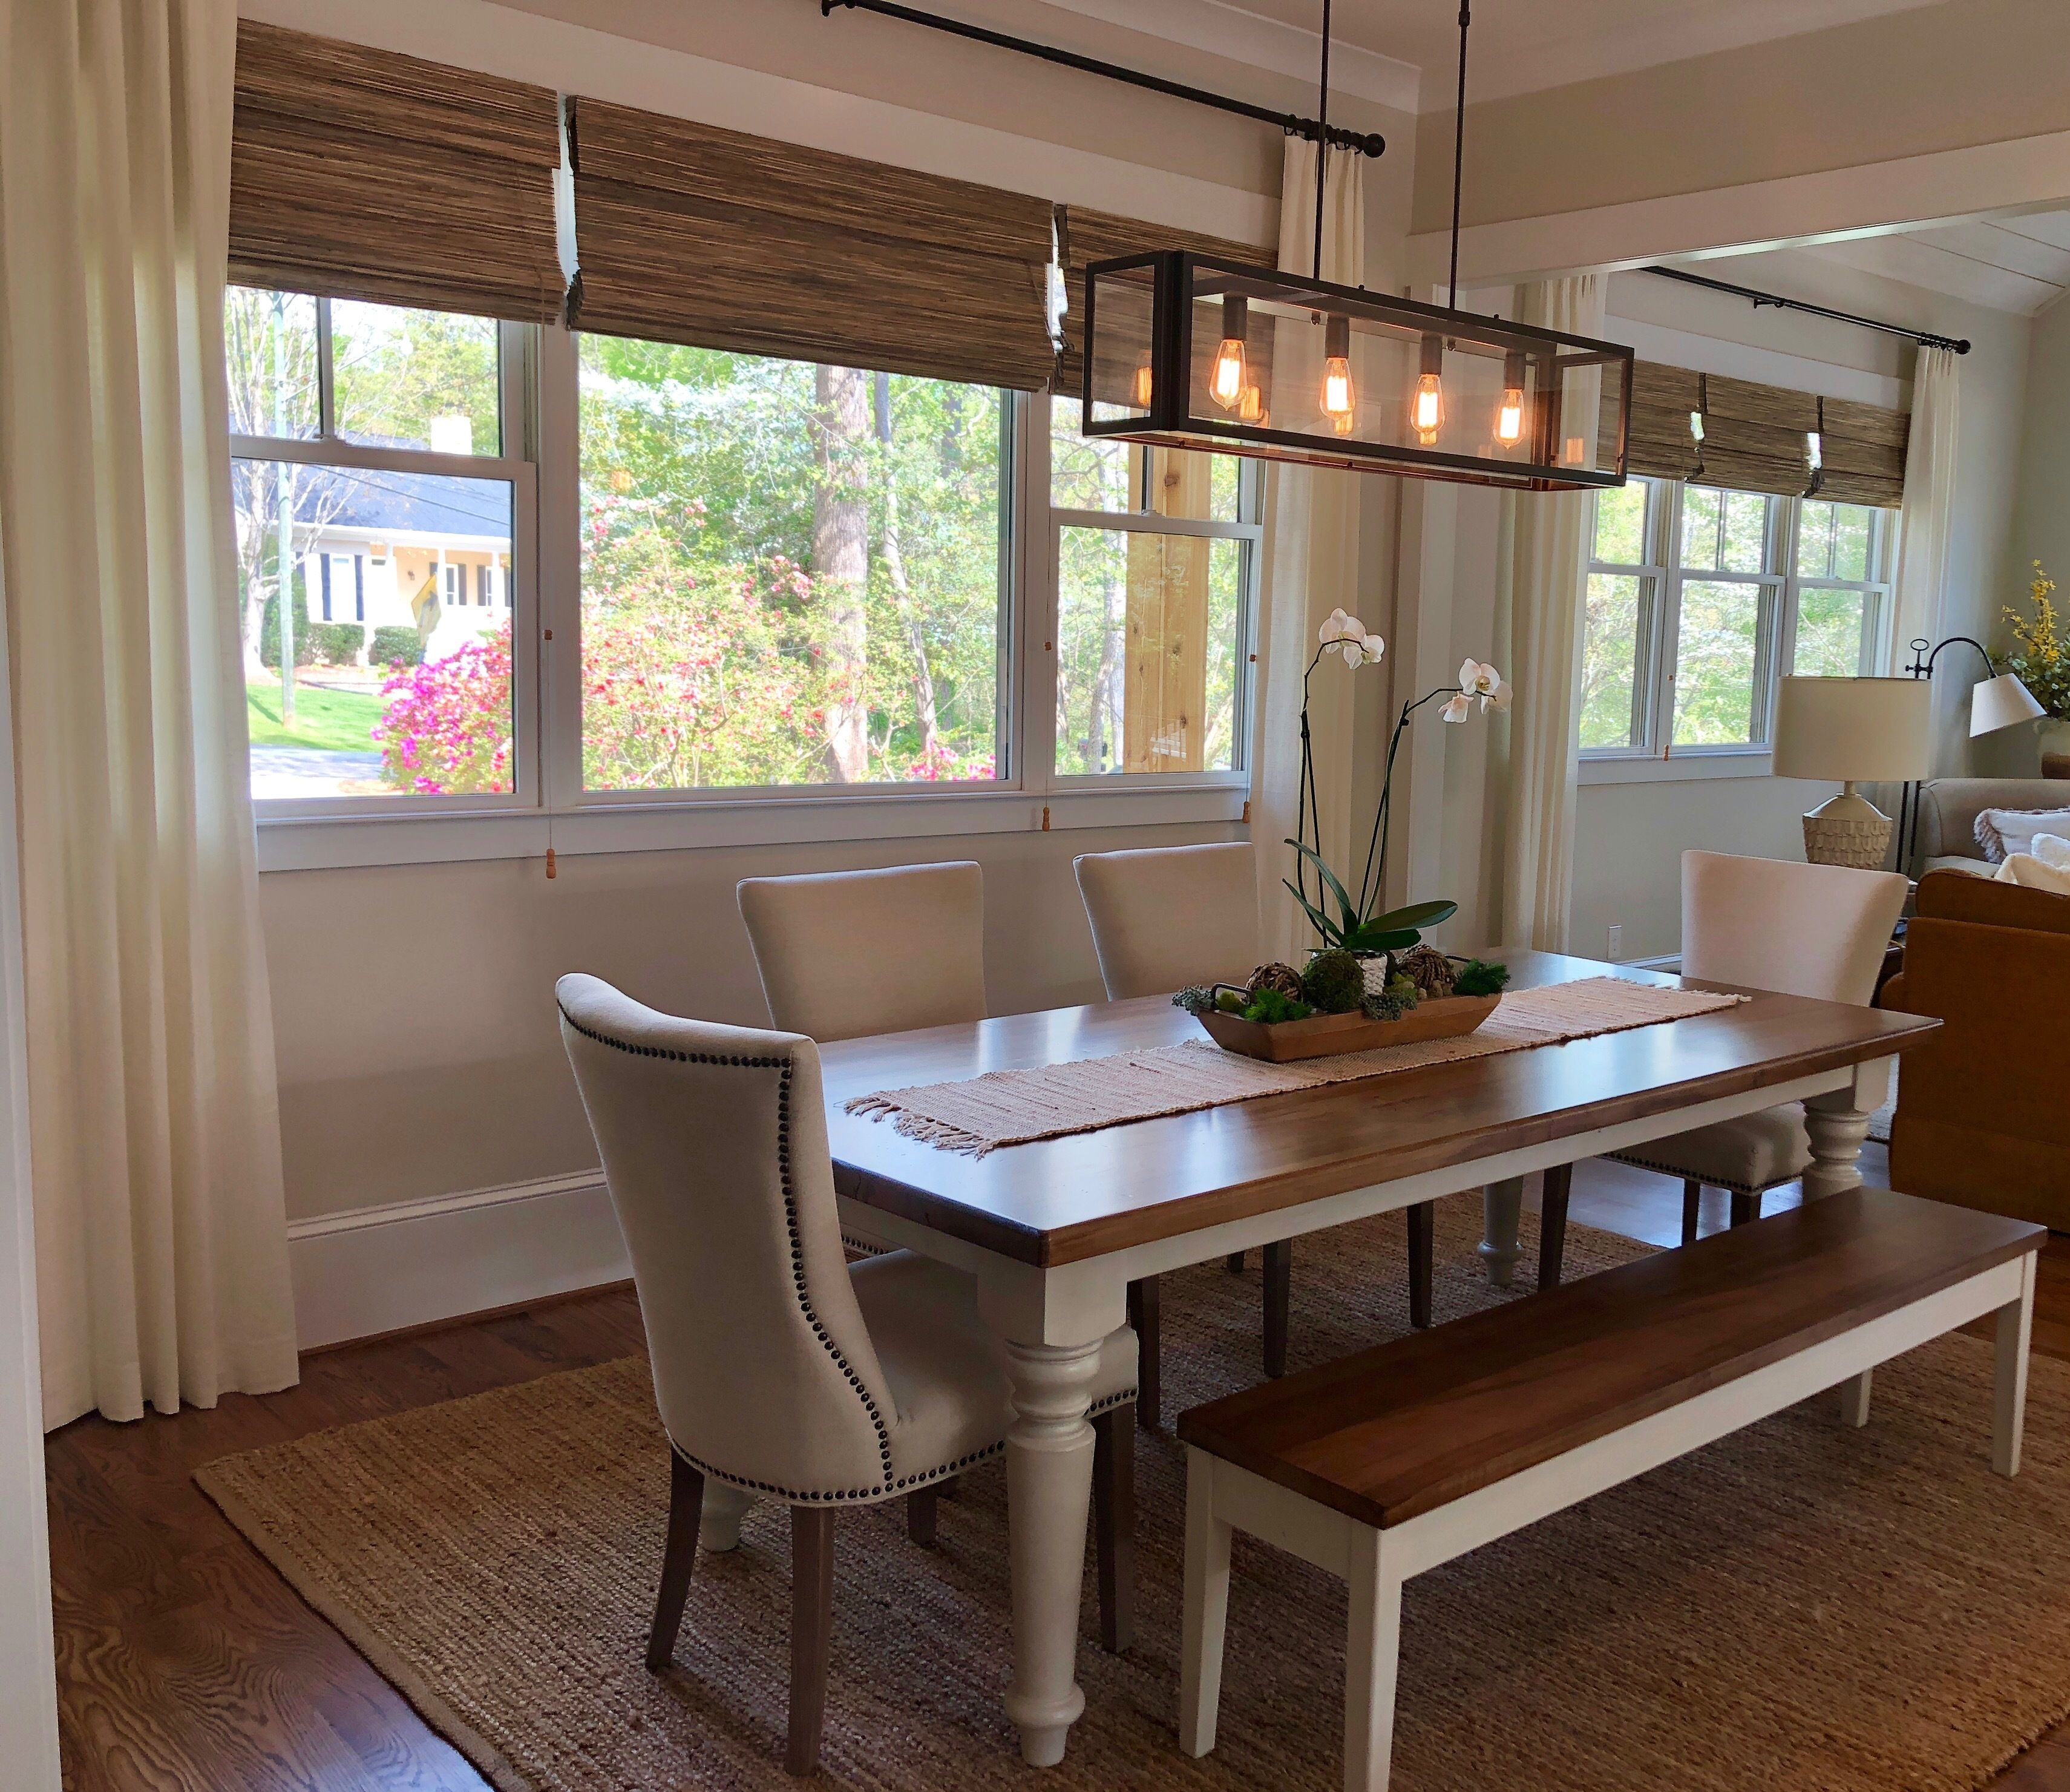 Beautiful farmhouse dining table bench and chairs woven